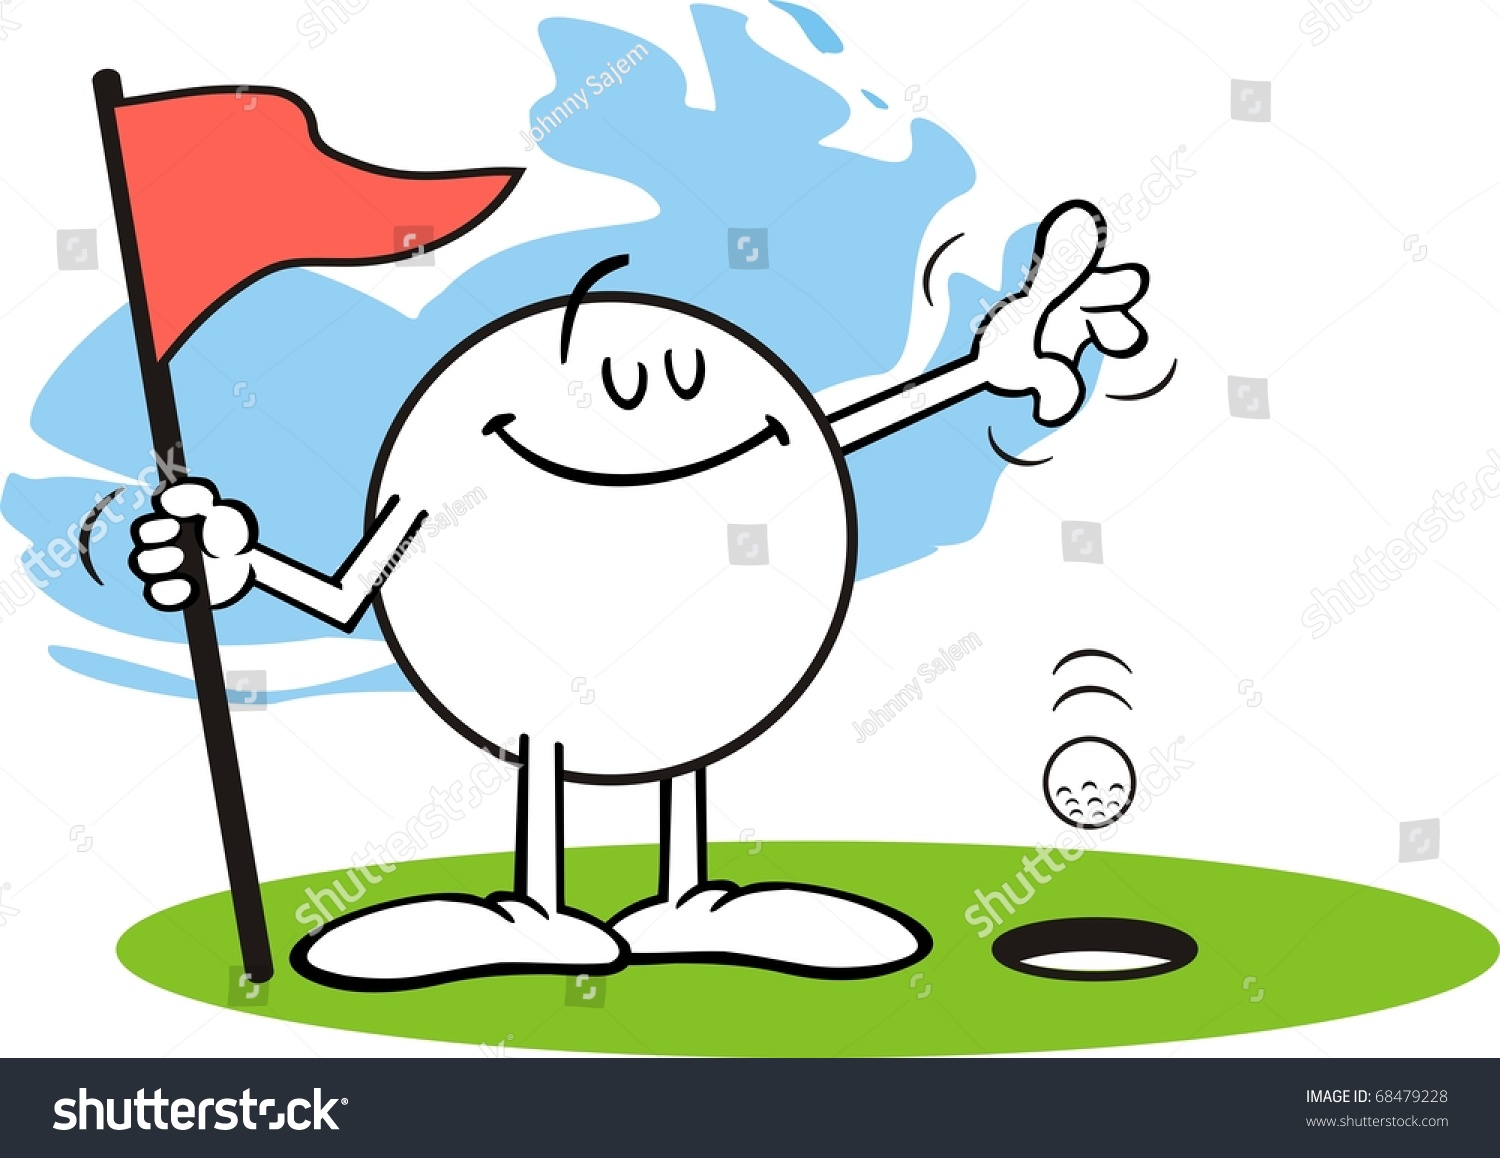 Hole in one clipart 6 » Clipart Station.